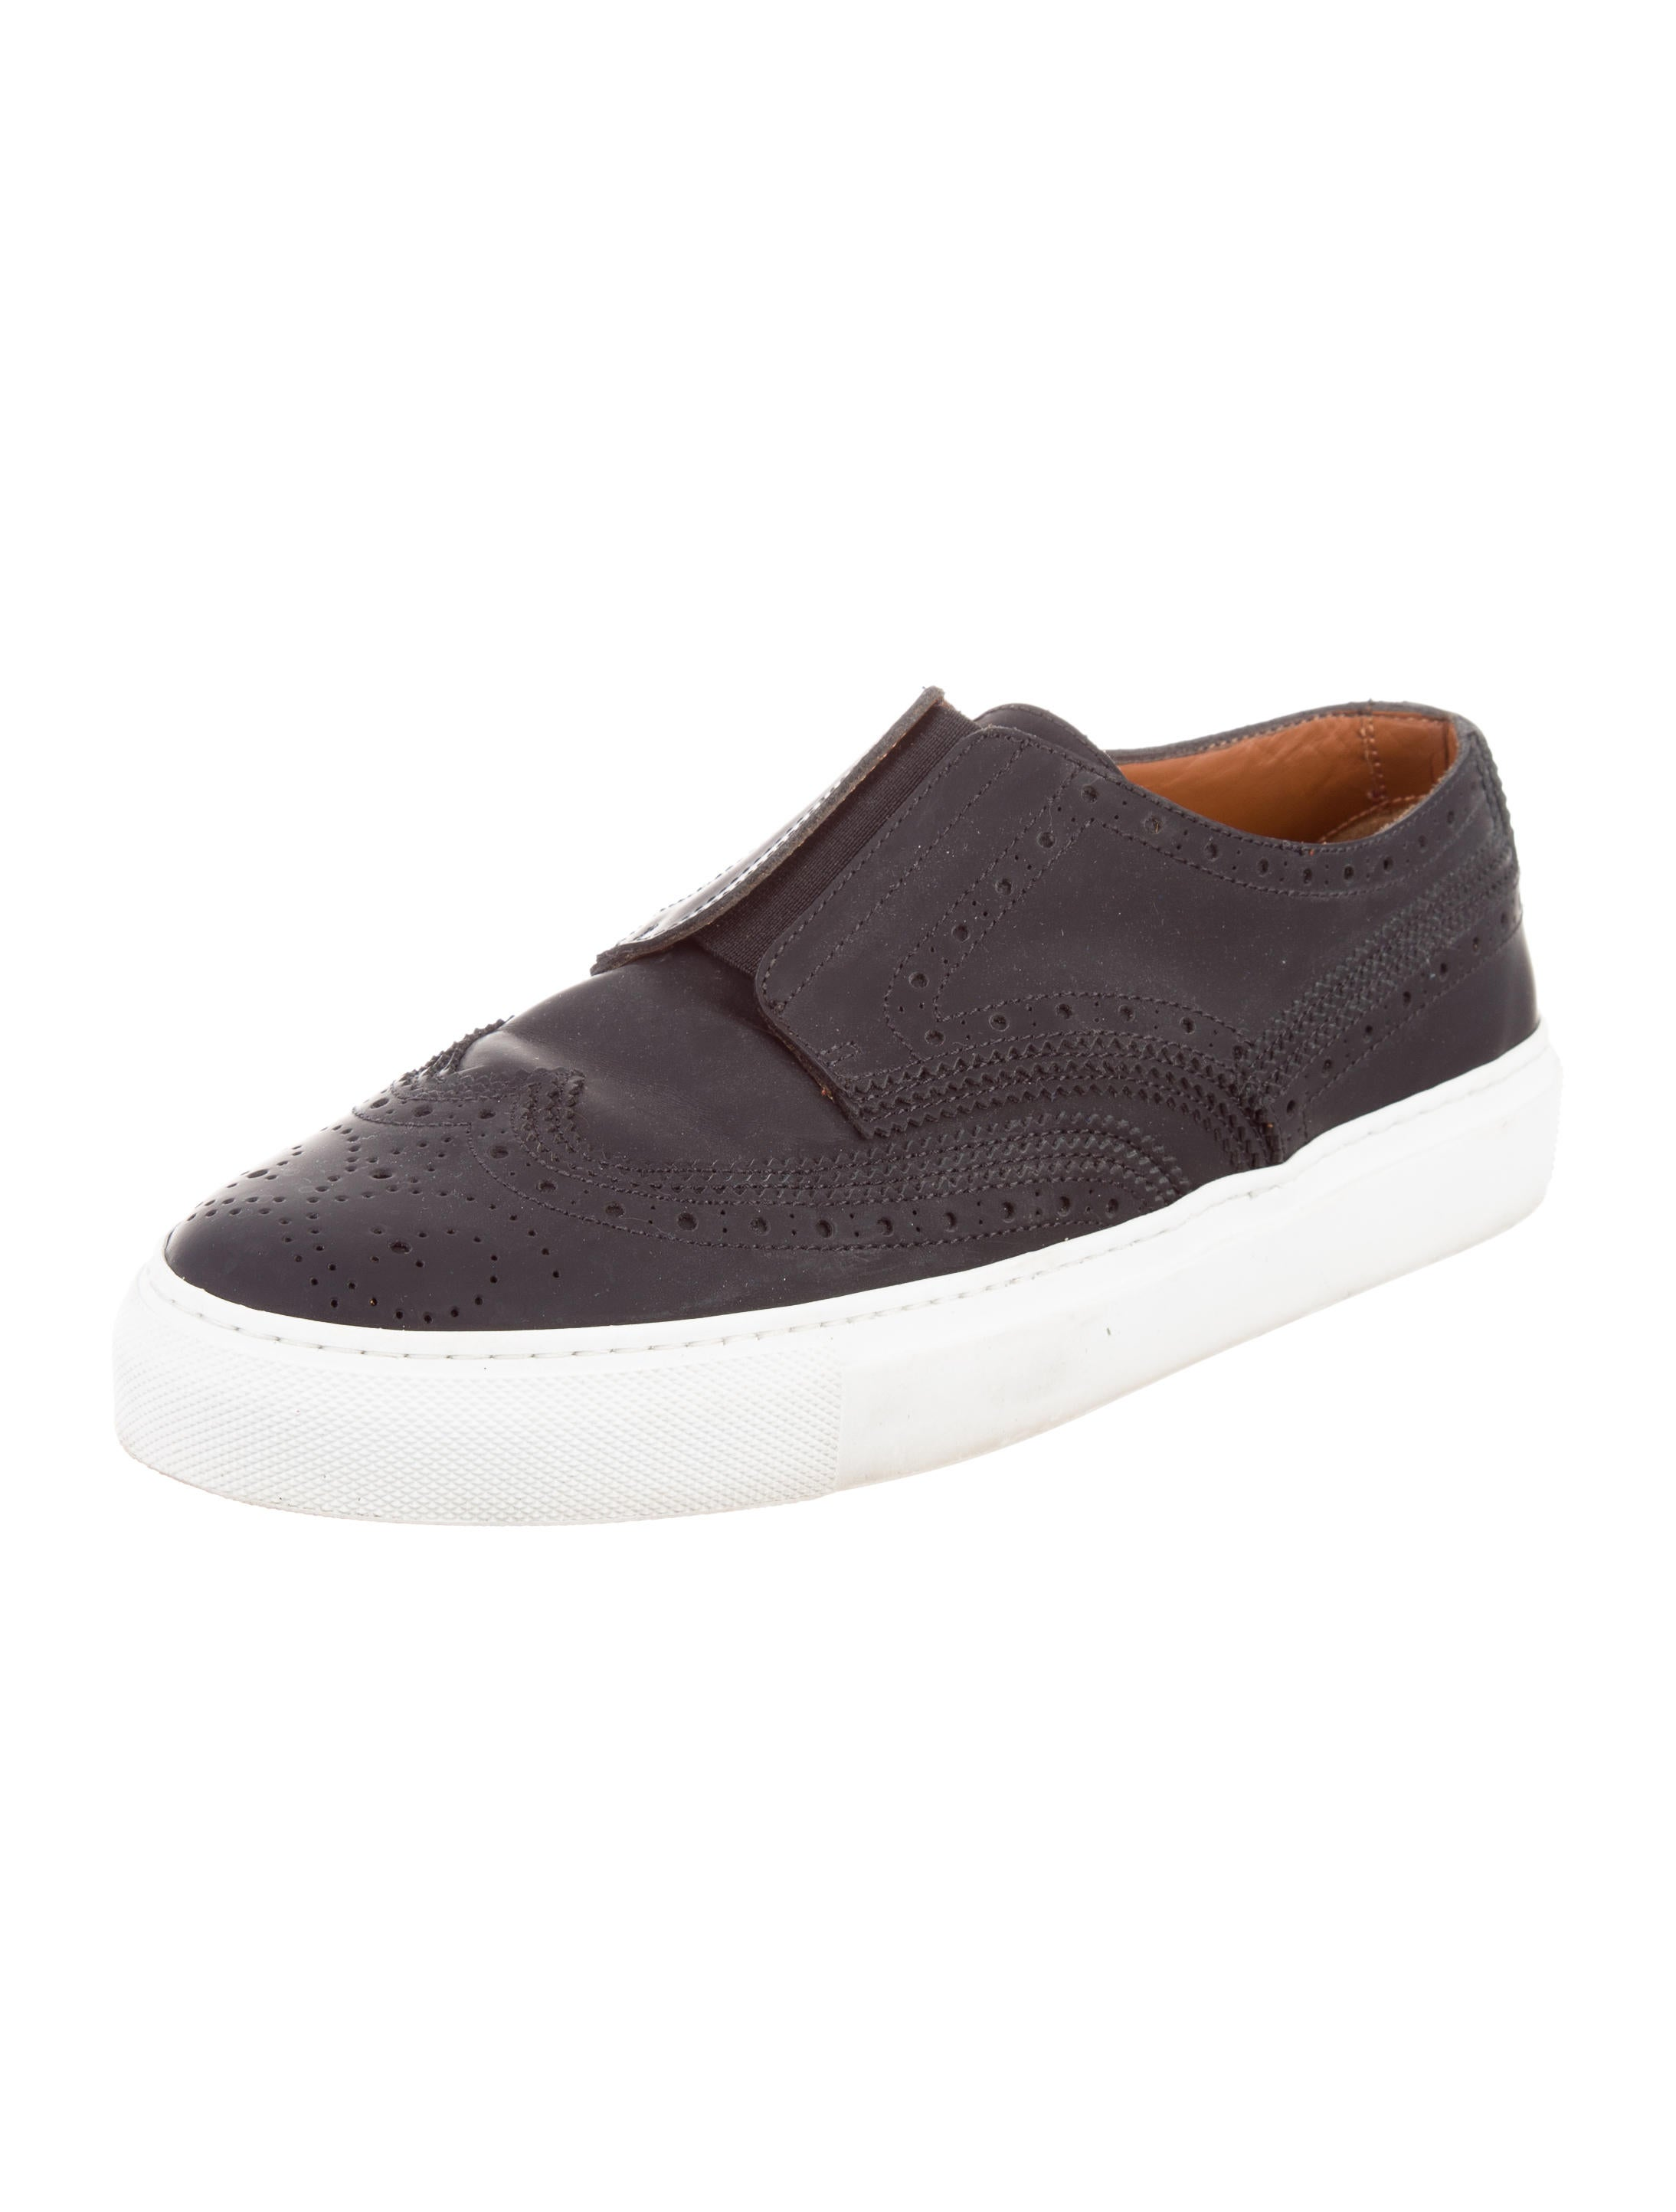 givenchy matte leather slip on sneakers shoes giv38048